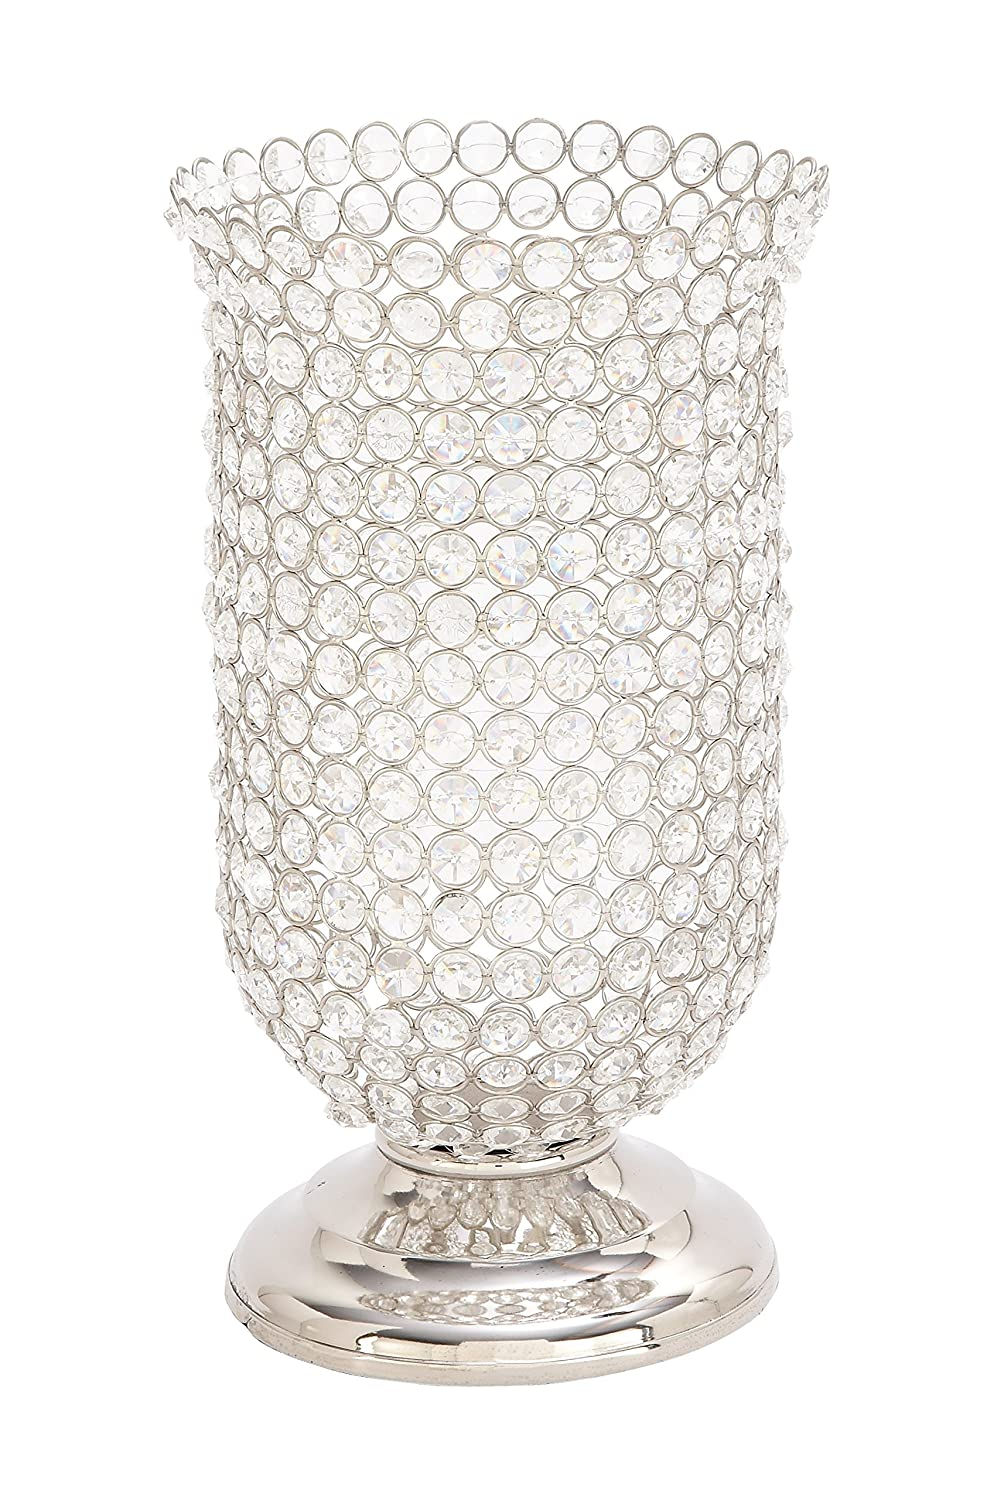 Silver//Clear Deco 79 54259 Inverted Bell-Shaped Aluminum Candle Holder 14 x 7